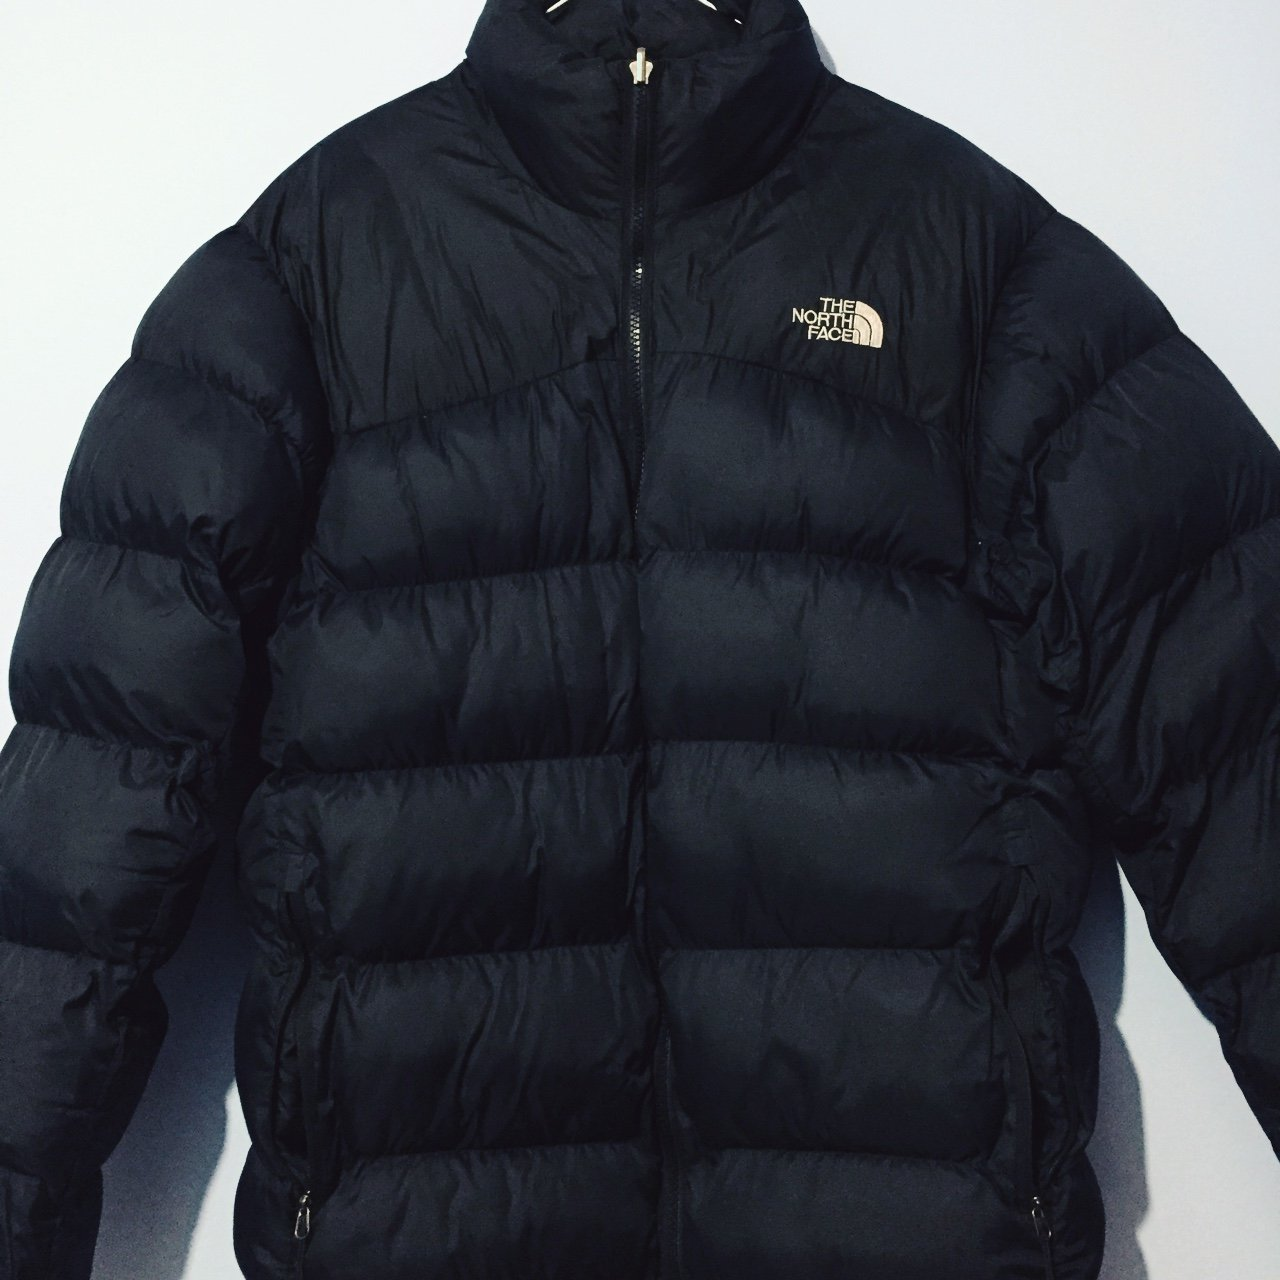 THE NORTH FACE NUPTSE IN IT S ORIGINAL BLACK AND GREY FOR a - Depop 9f080469b